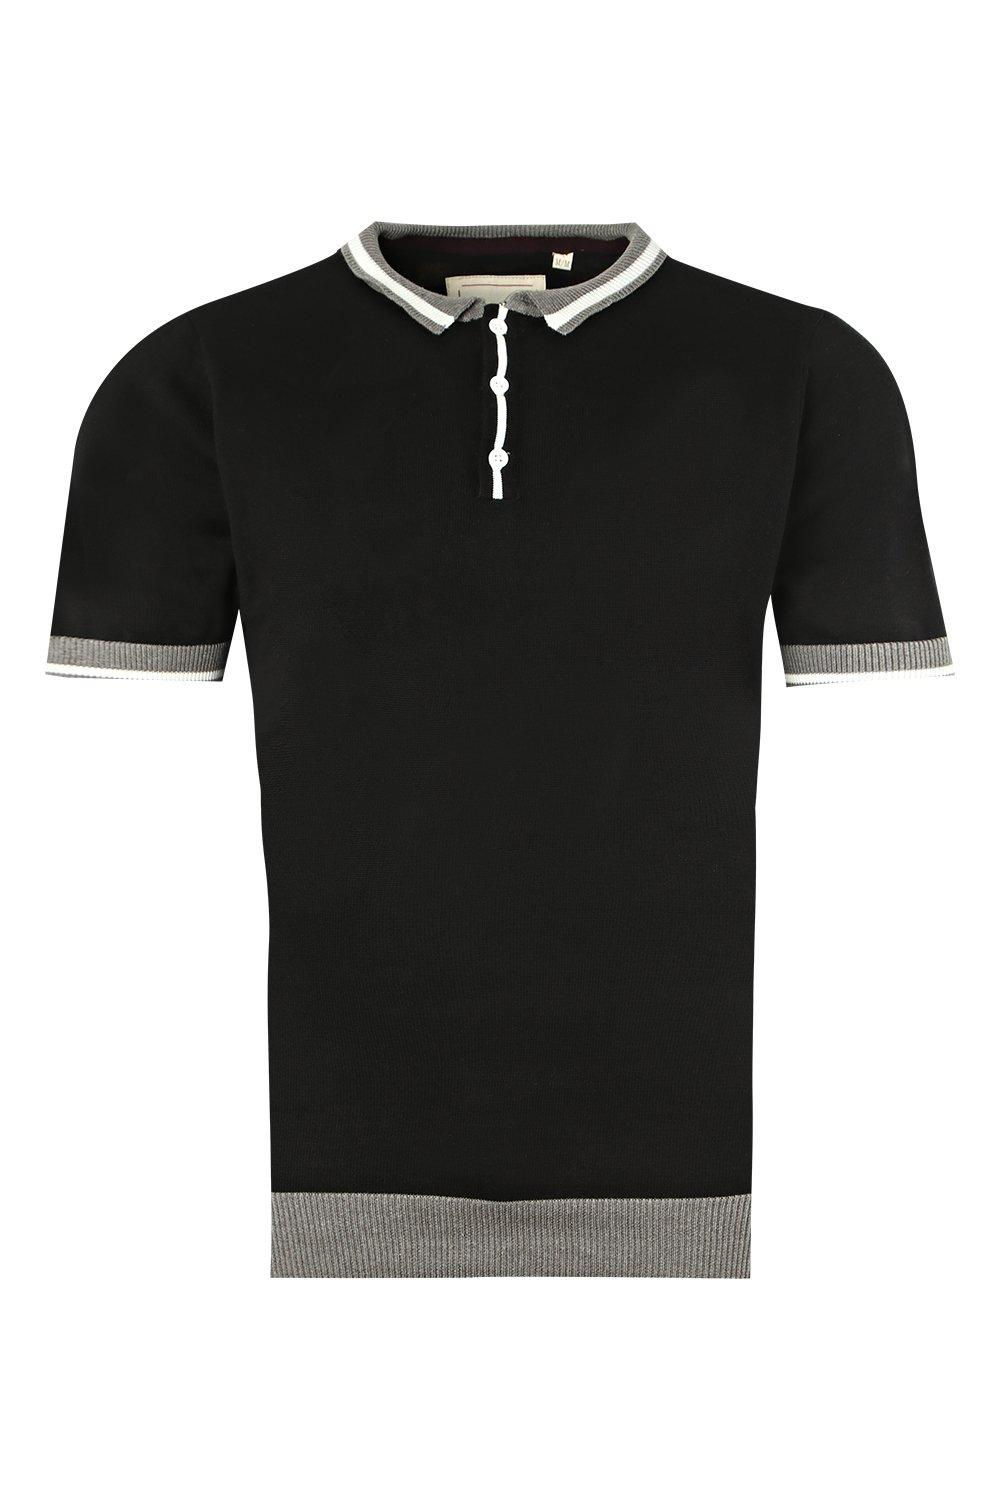 boohooMAN black Short Sleeve Knitted Polo with Tipping